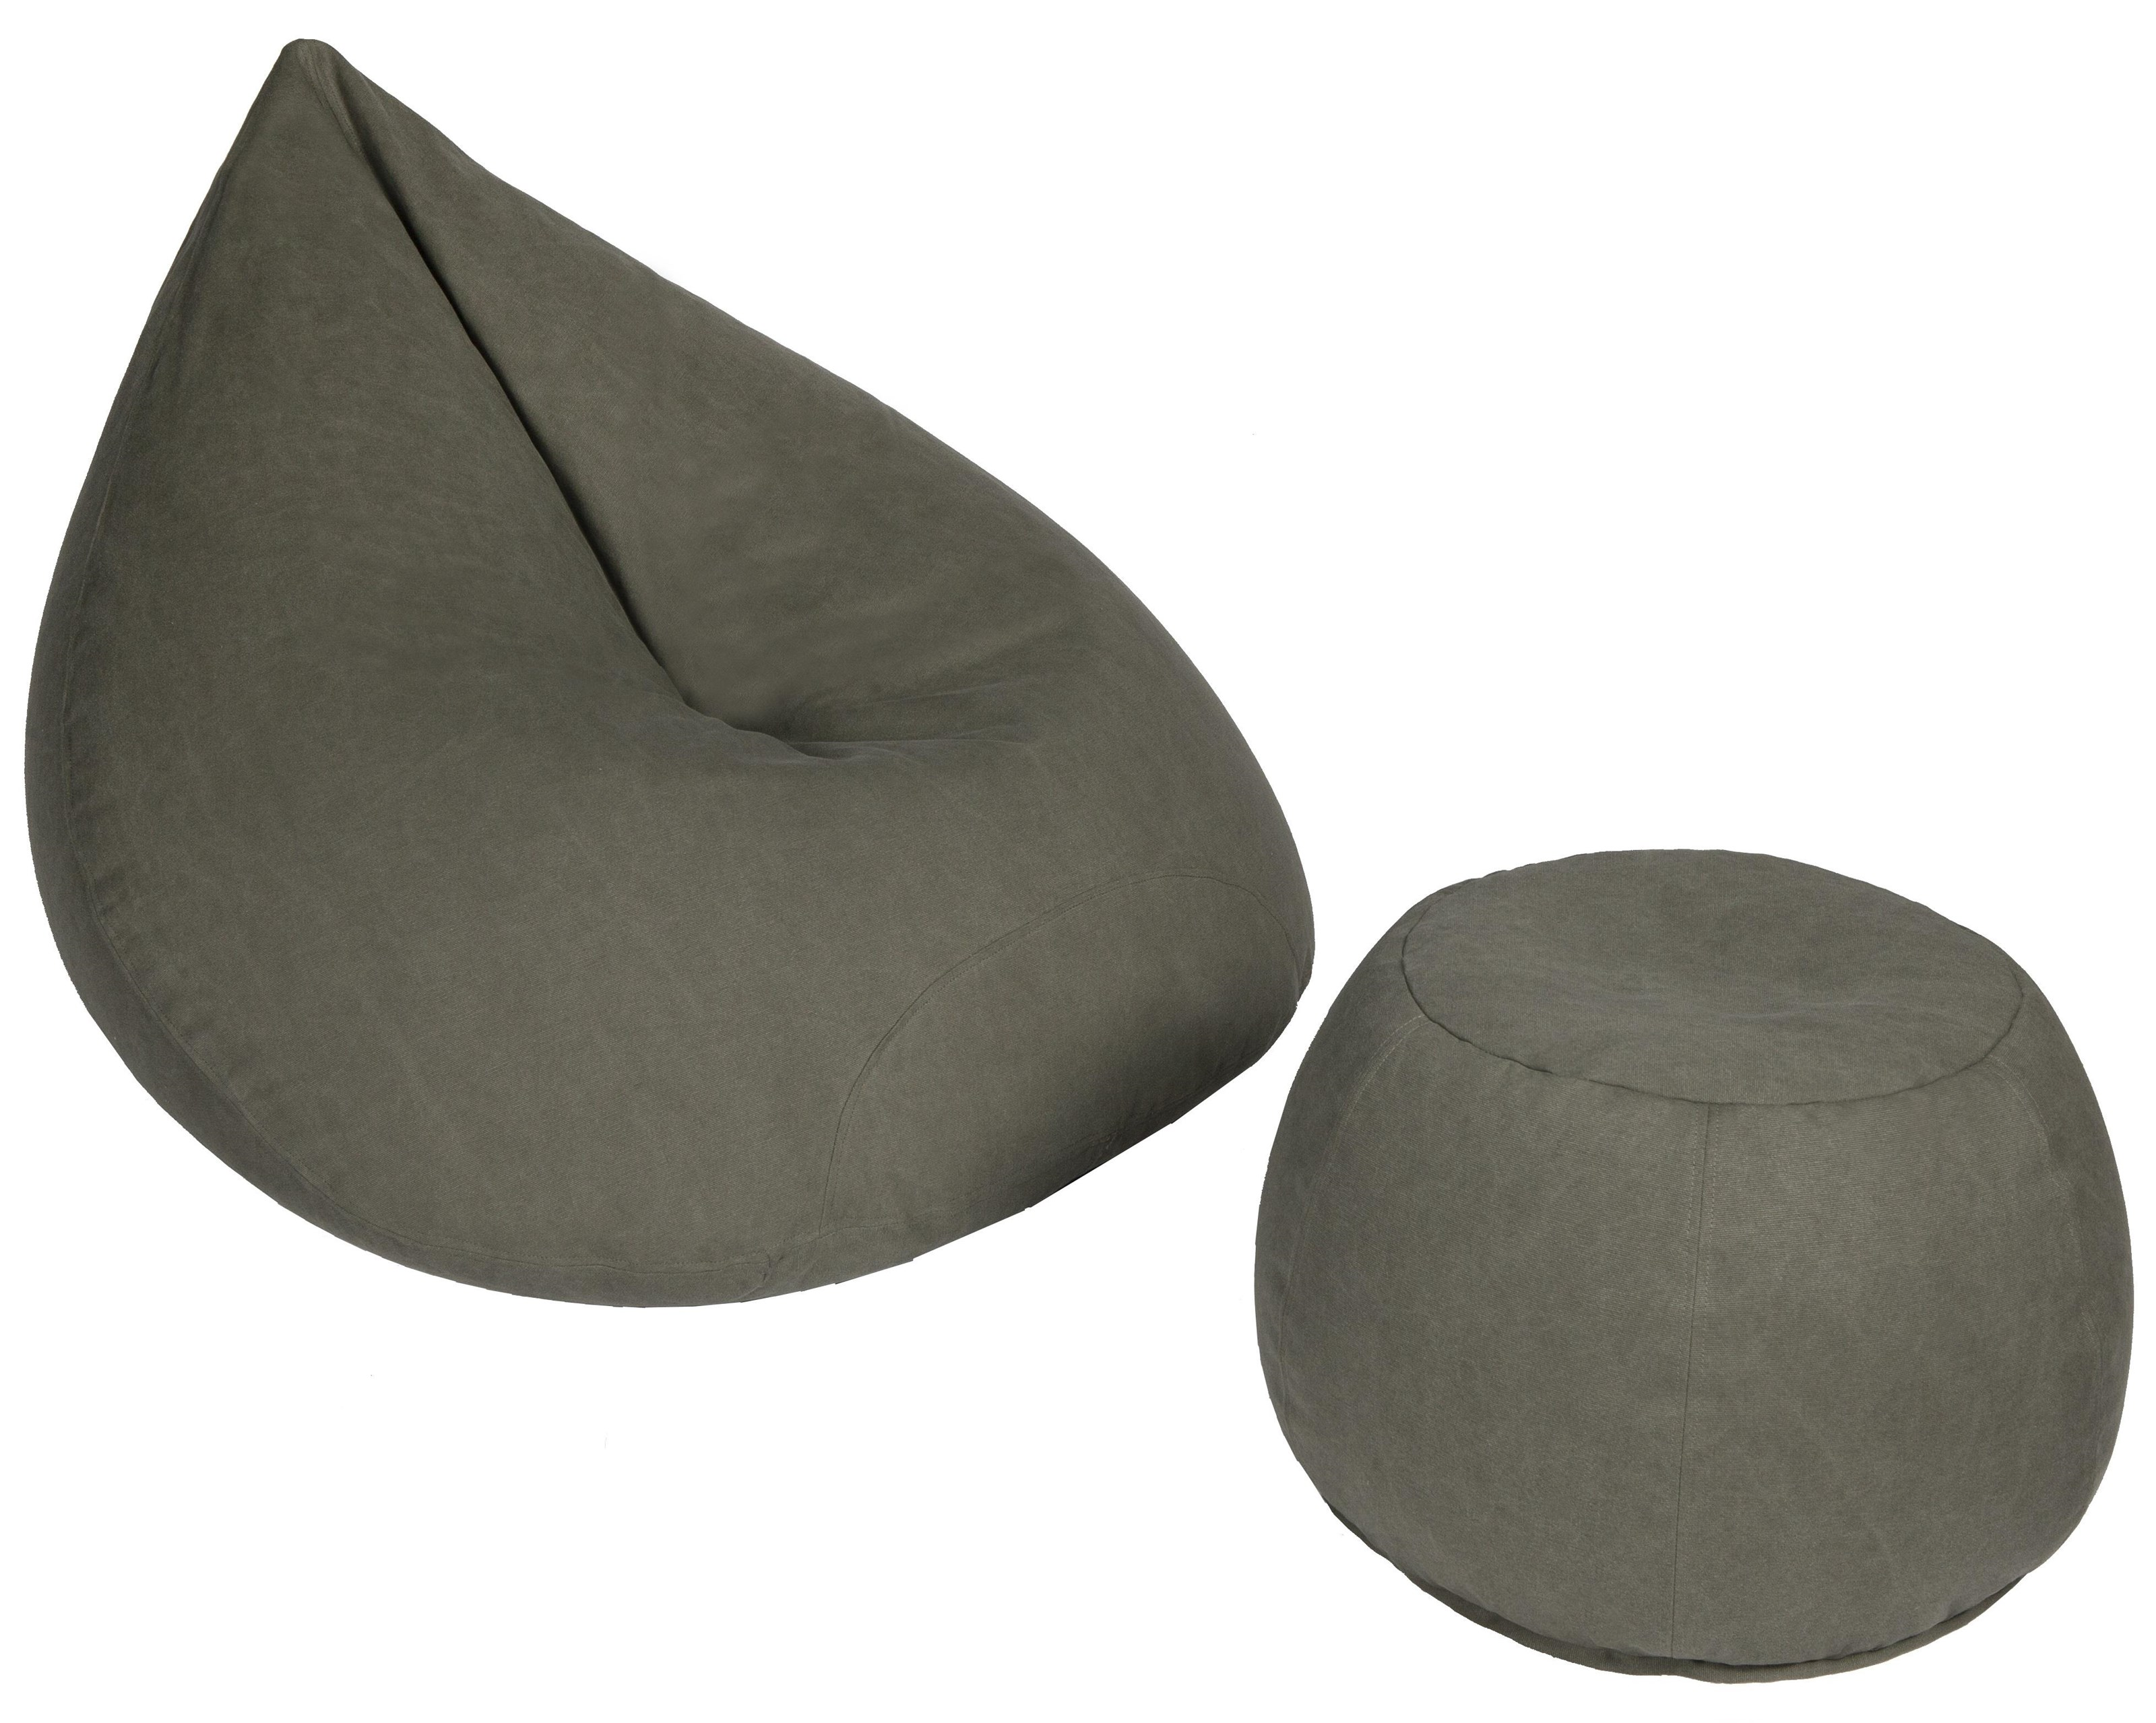 Beanbag Grey Beanbag Large Tear & Ottoman Pack by Lazy Life Paris at HomeWorld Furniture